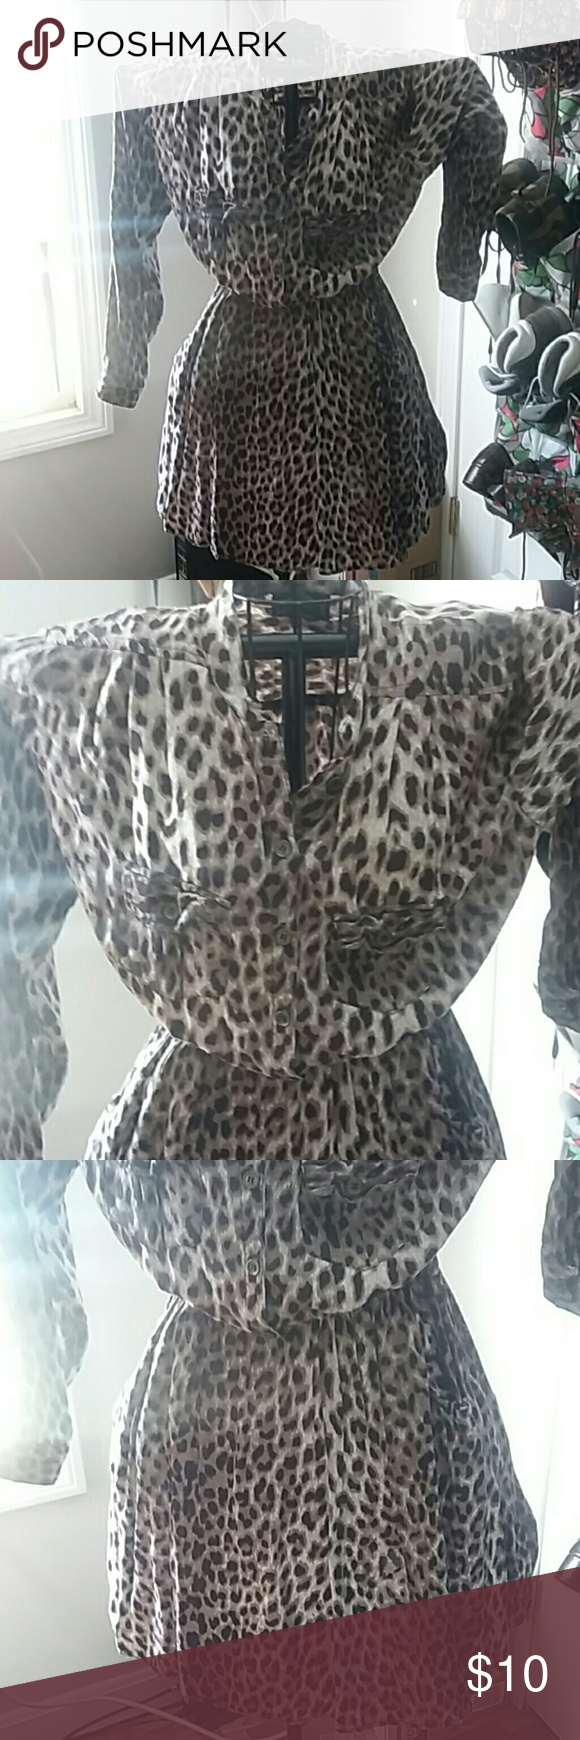 Cool pre loved ANGIE dress Leopard print, button up, gathered at waist with area for a belt, and pockets. Super soft, comfy, and stylish. No flaws Angie Dresses Midi